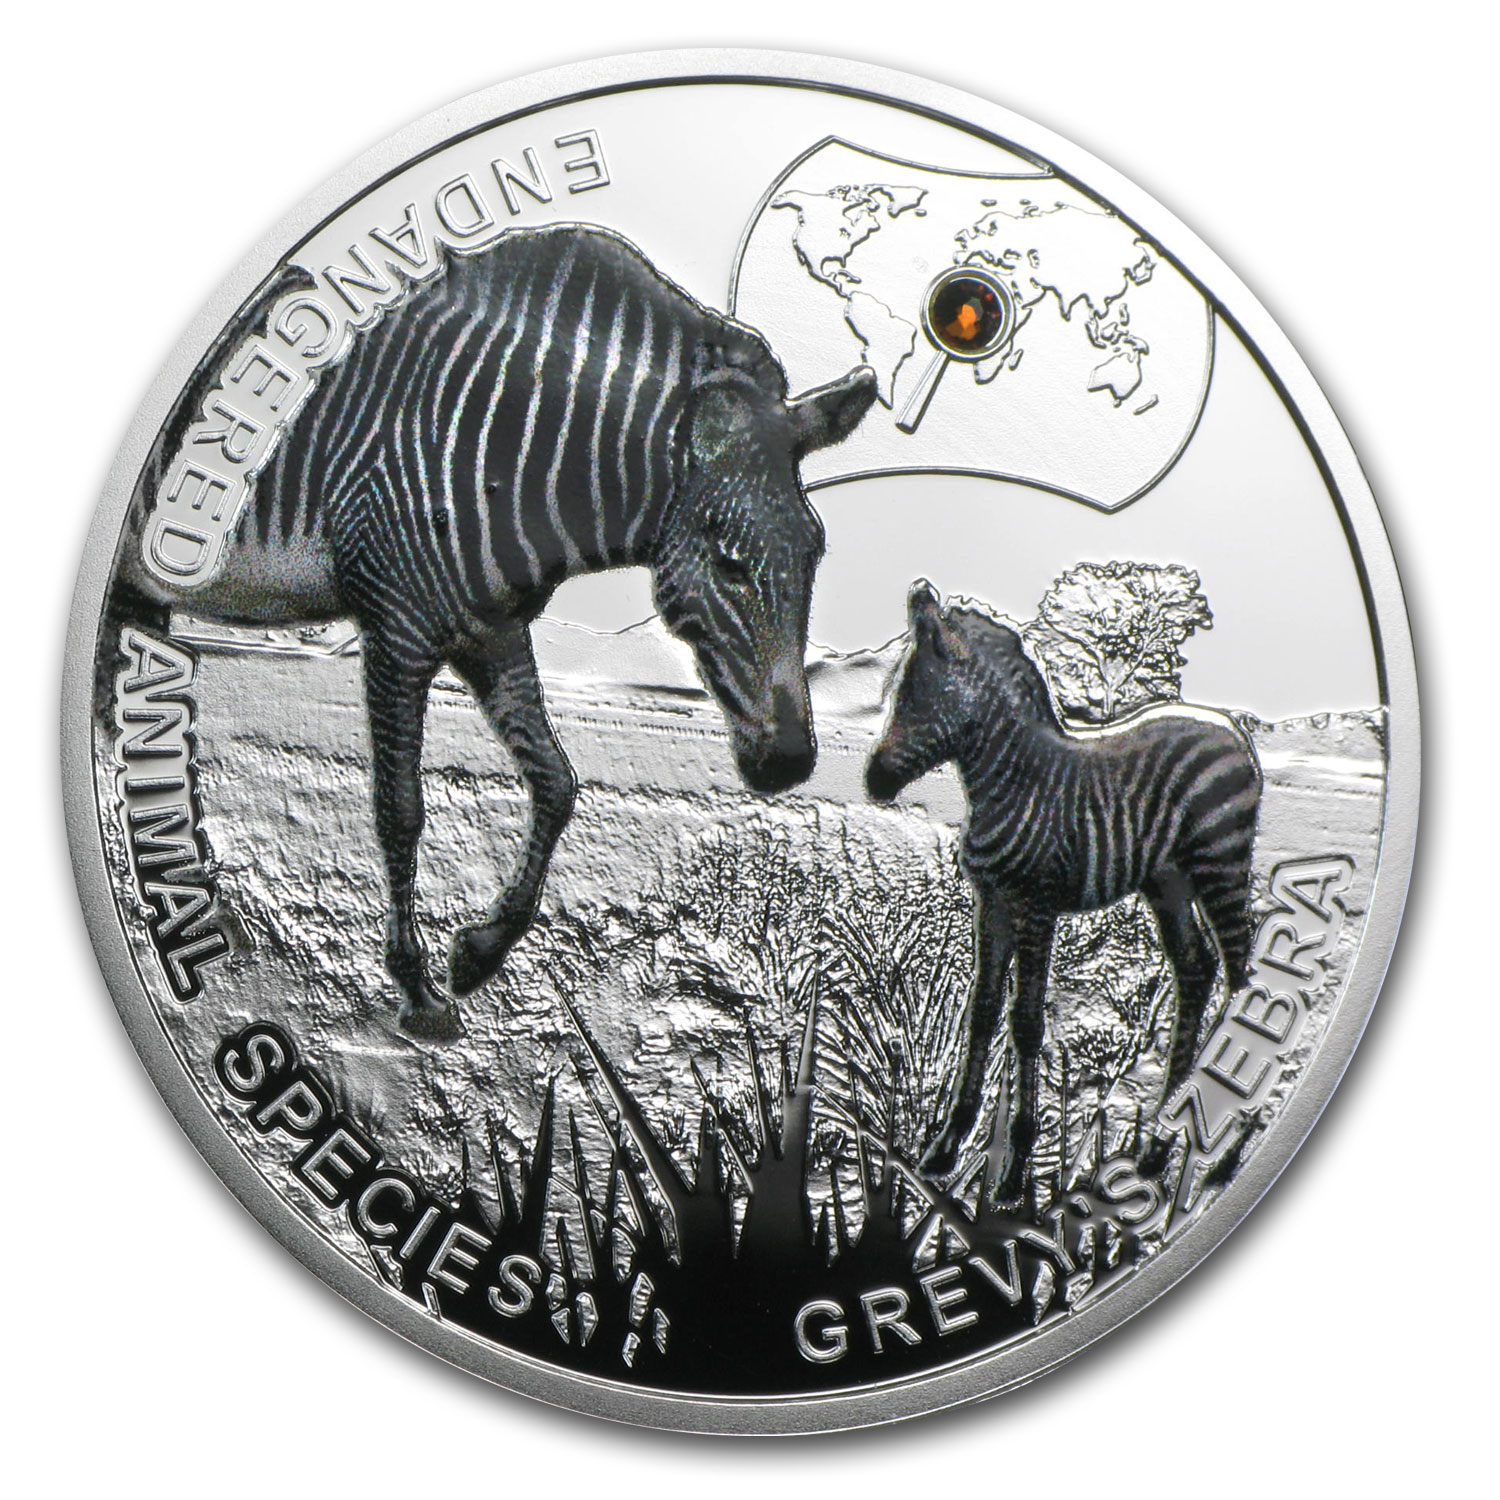 2014 Niue Proof Silver Endangered Animal Species Grevy's Zebra